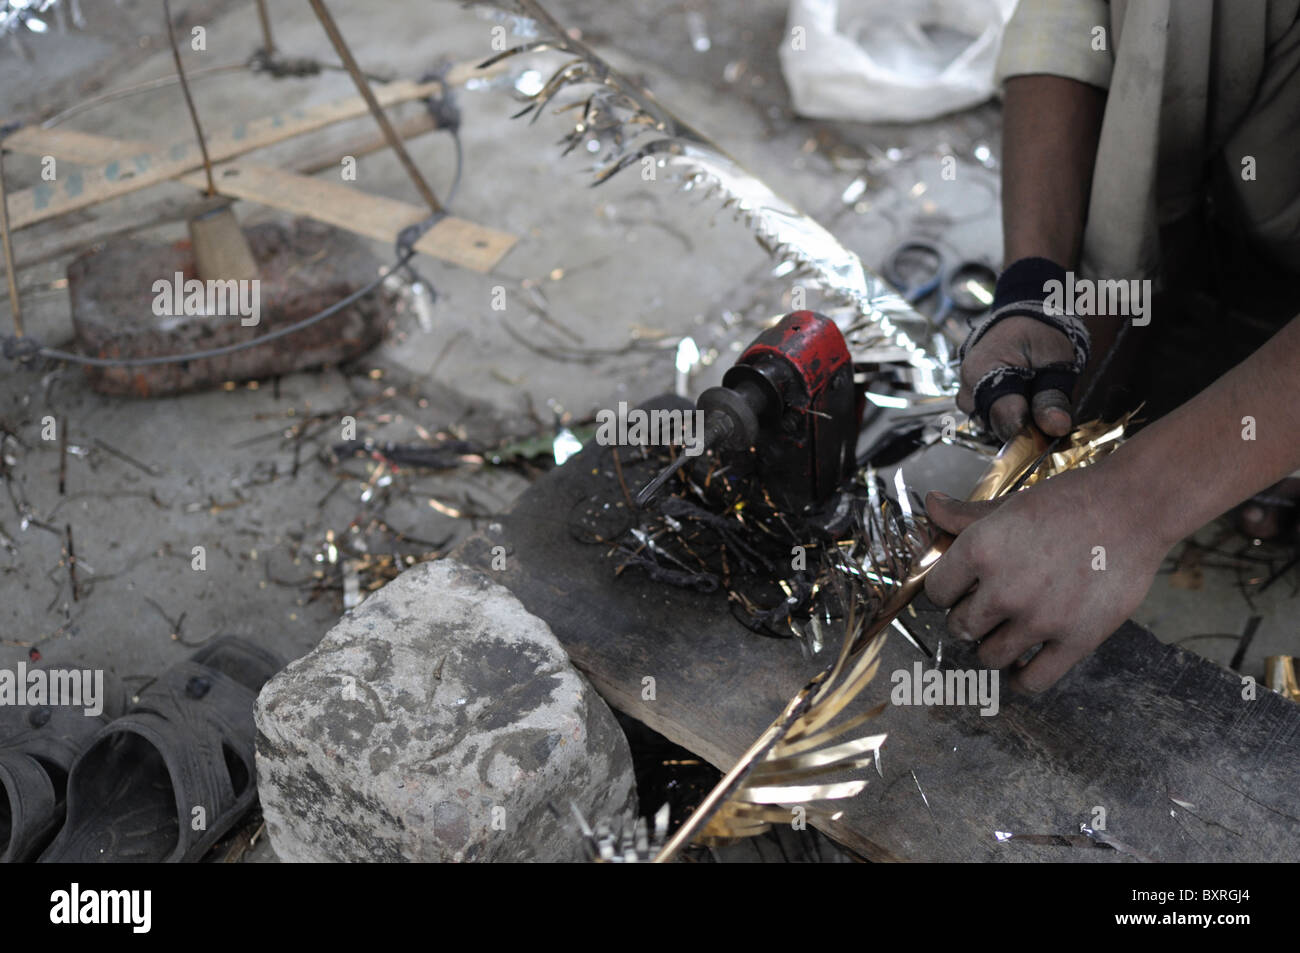 Young boy producing decorations in New Delhi. - Stock Image